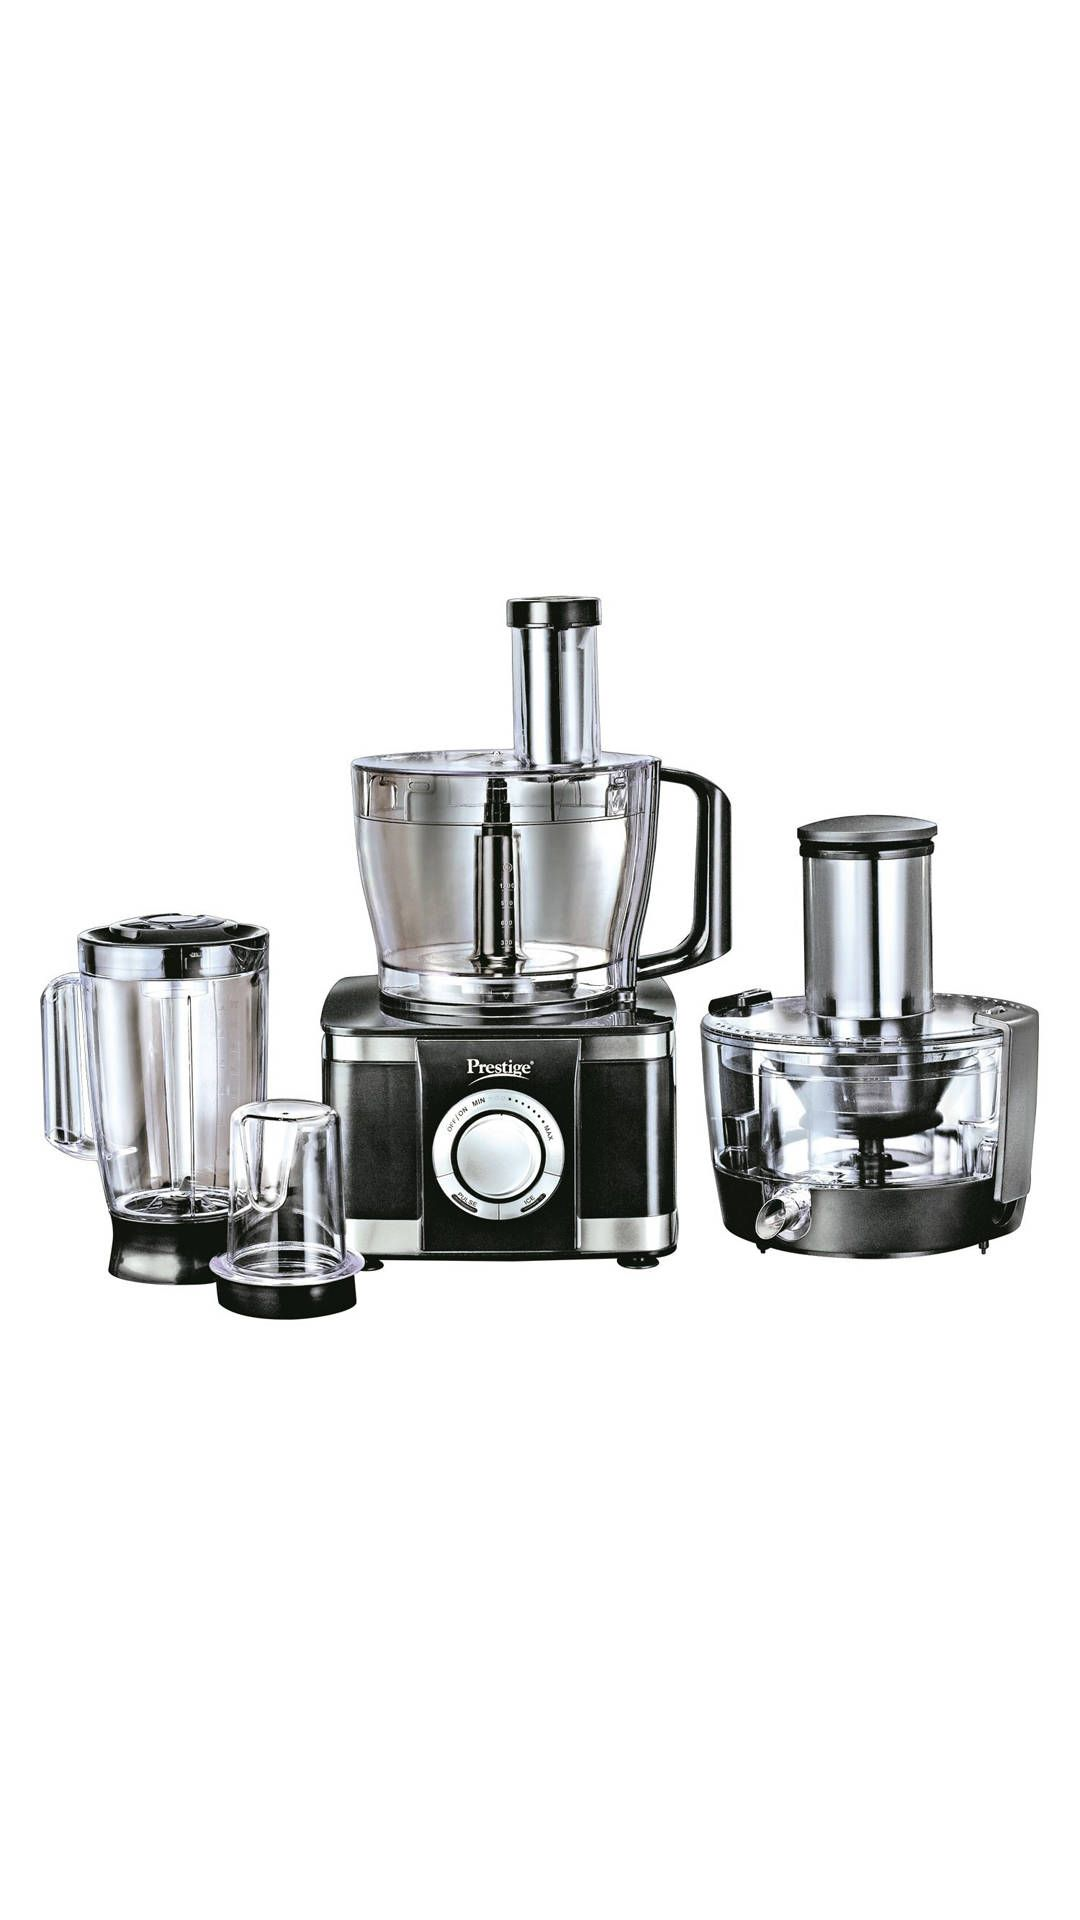 Specifications of Prestige Maestro Max 800 W Food Processor : Function : Grinding, Wet Grinding, Dry Grinding, Juicing, Grating, Kneading.